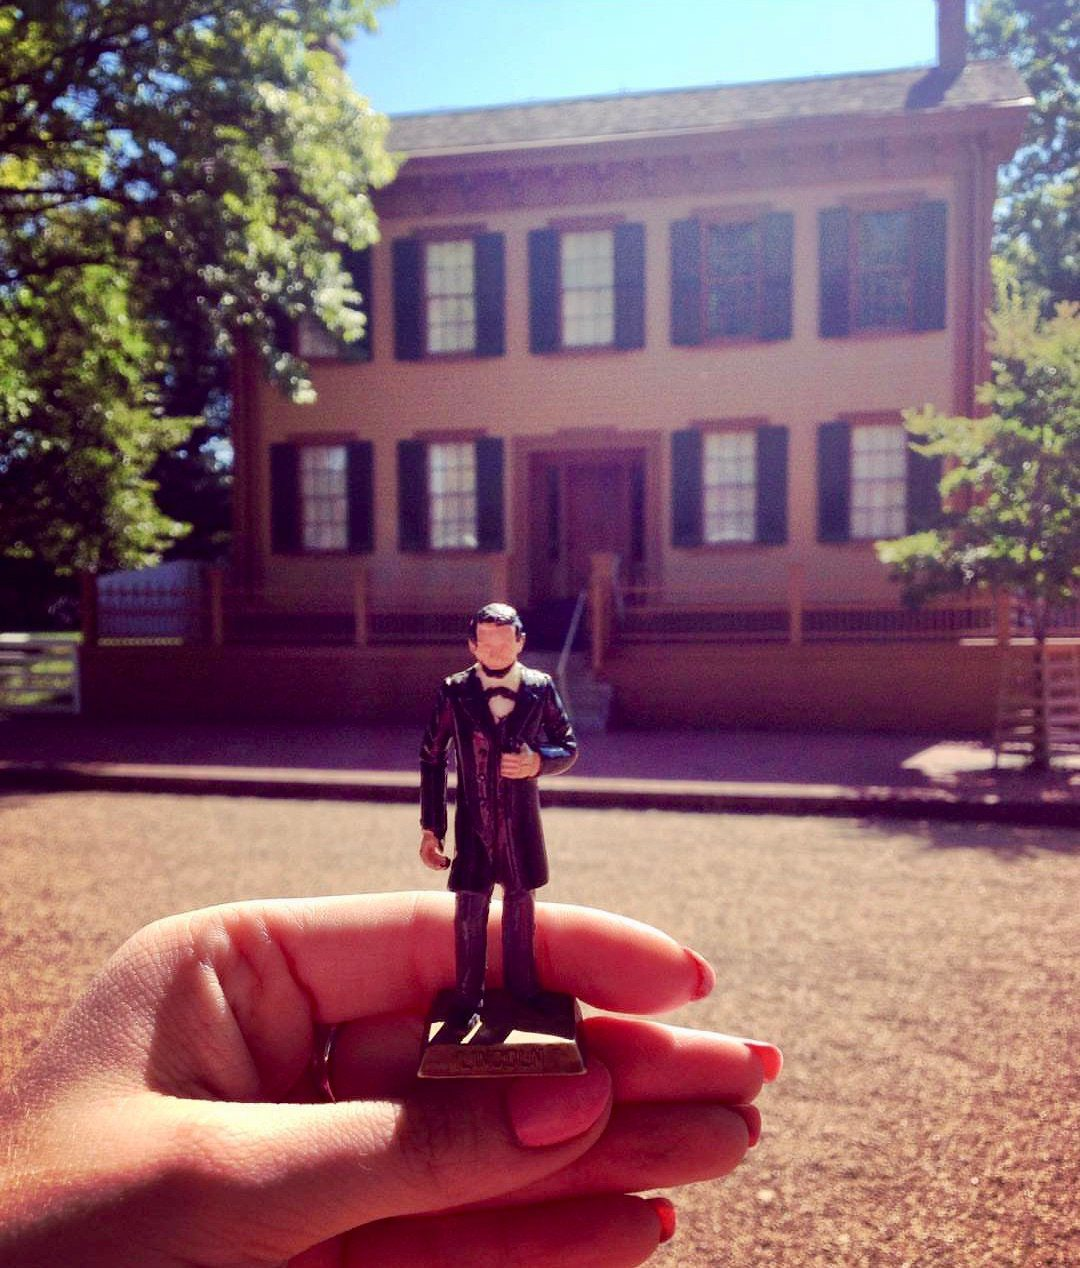 Lincoln house with toy figurine